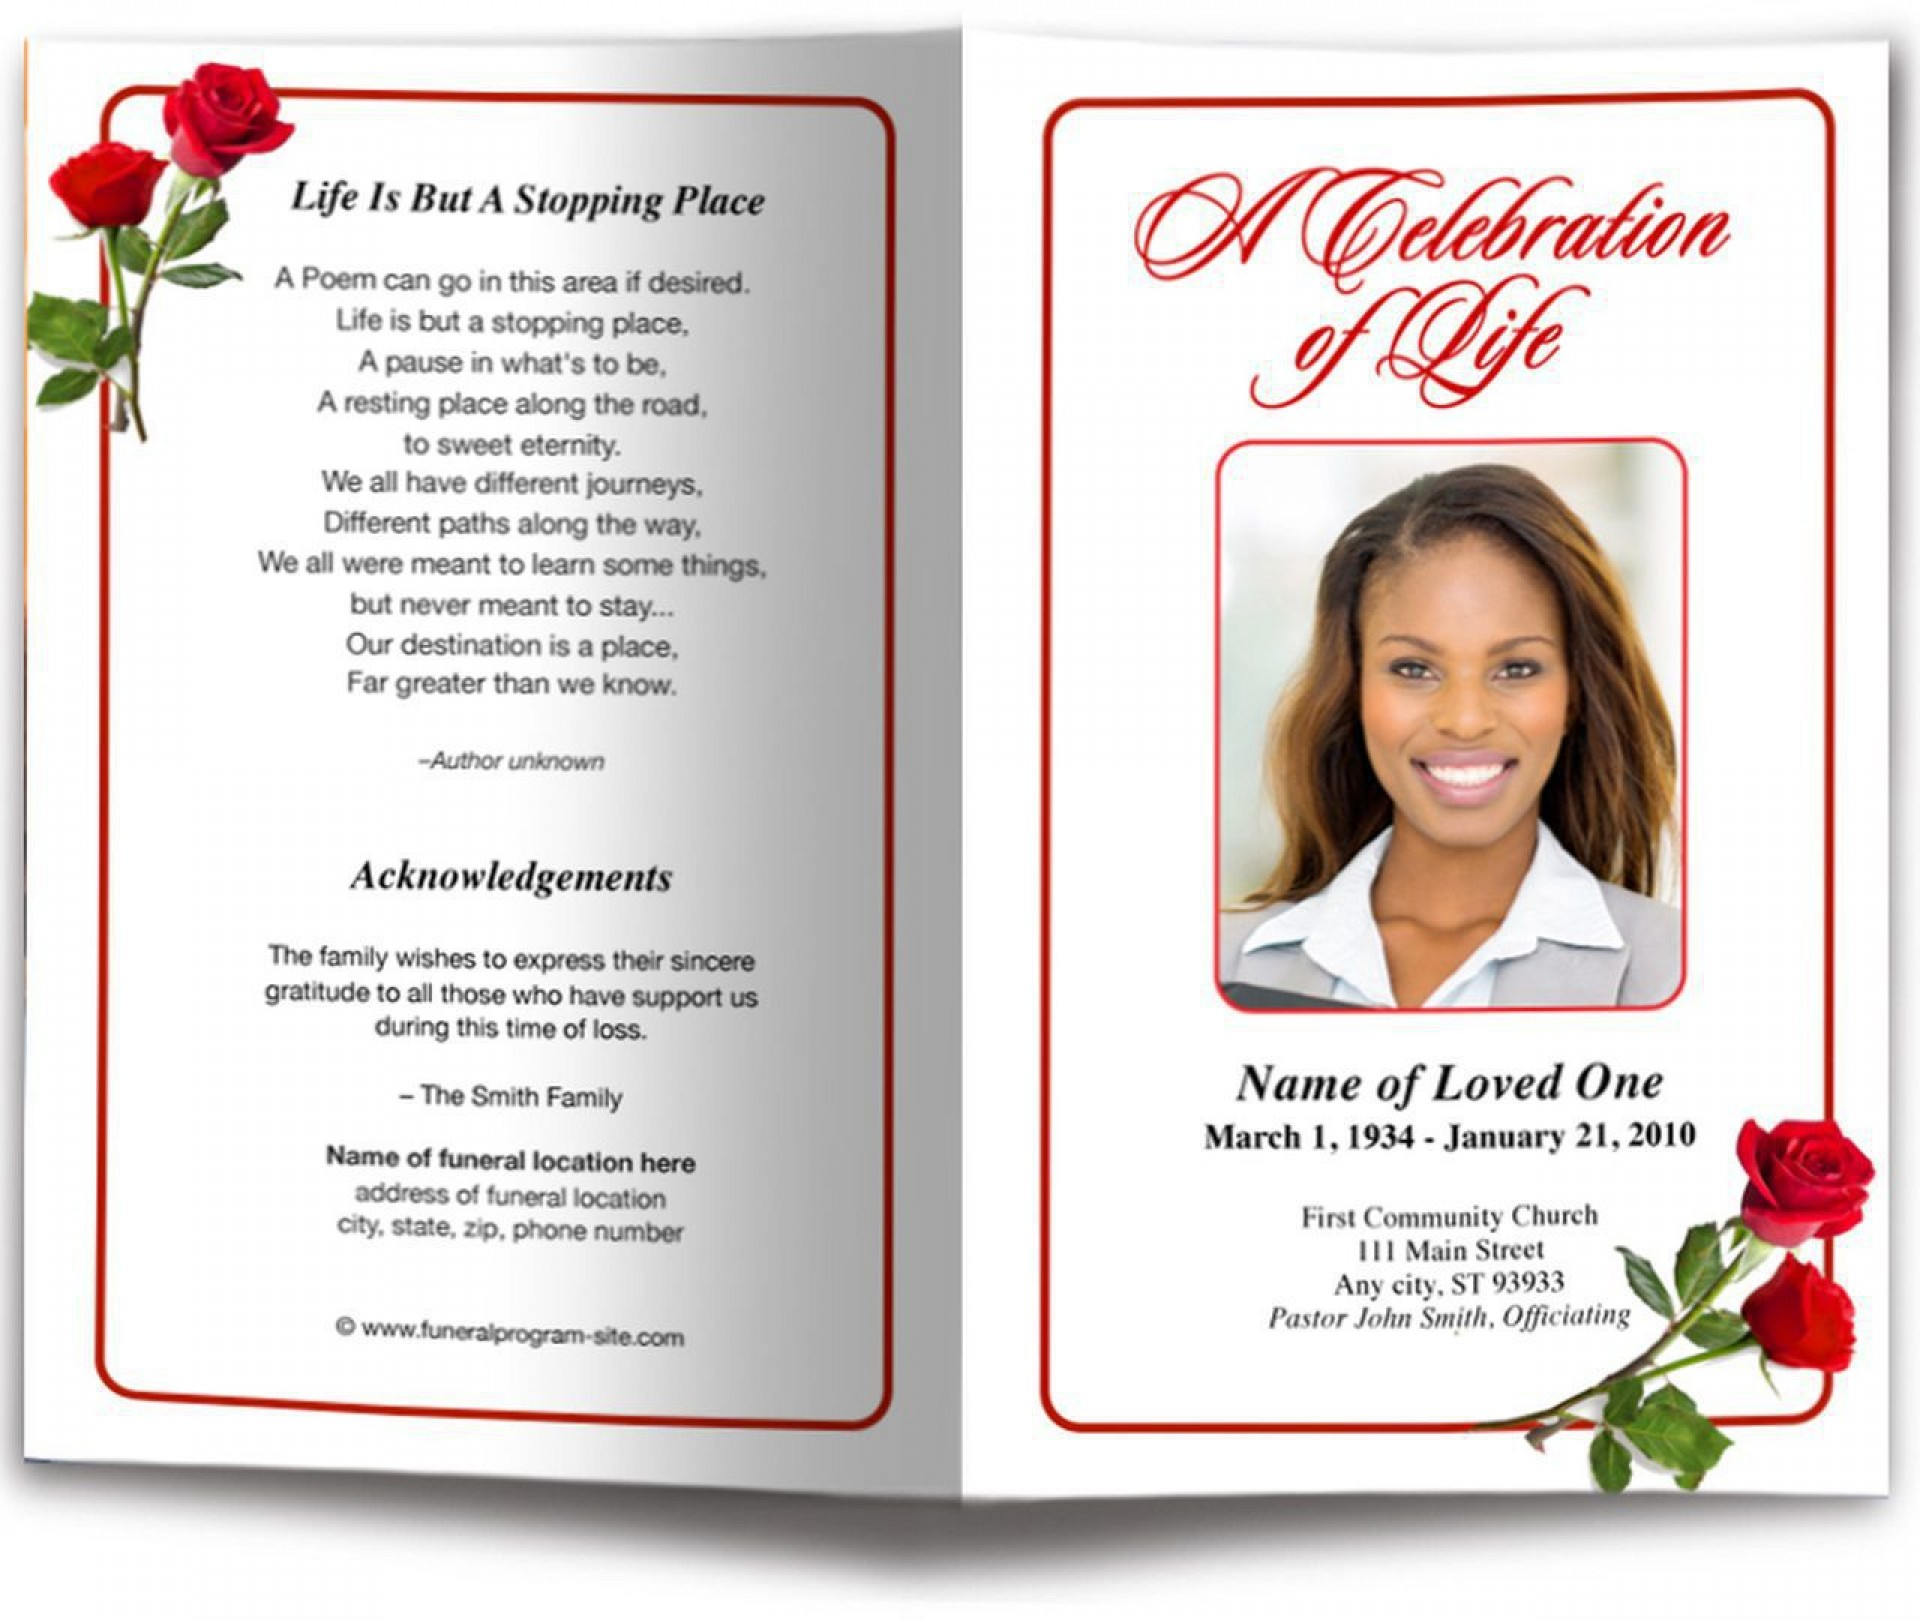 001 Exceptional Template For Funeral Program On Word Picture  2010 Free Sample Wording1920